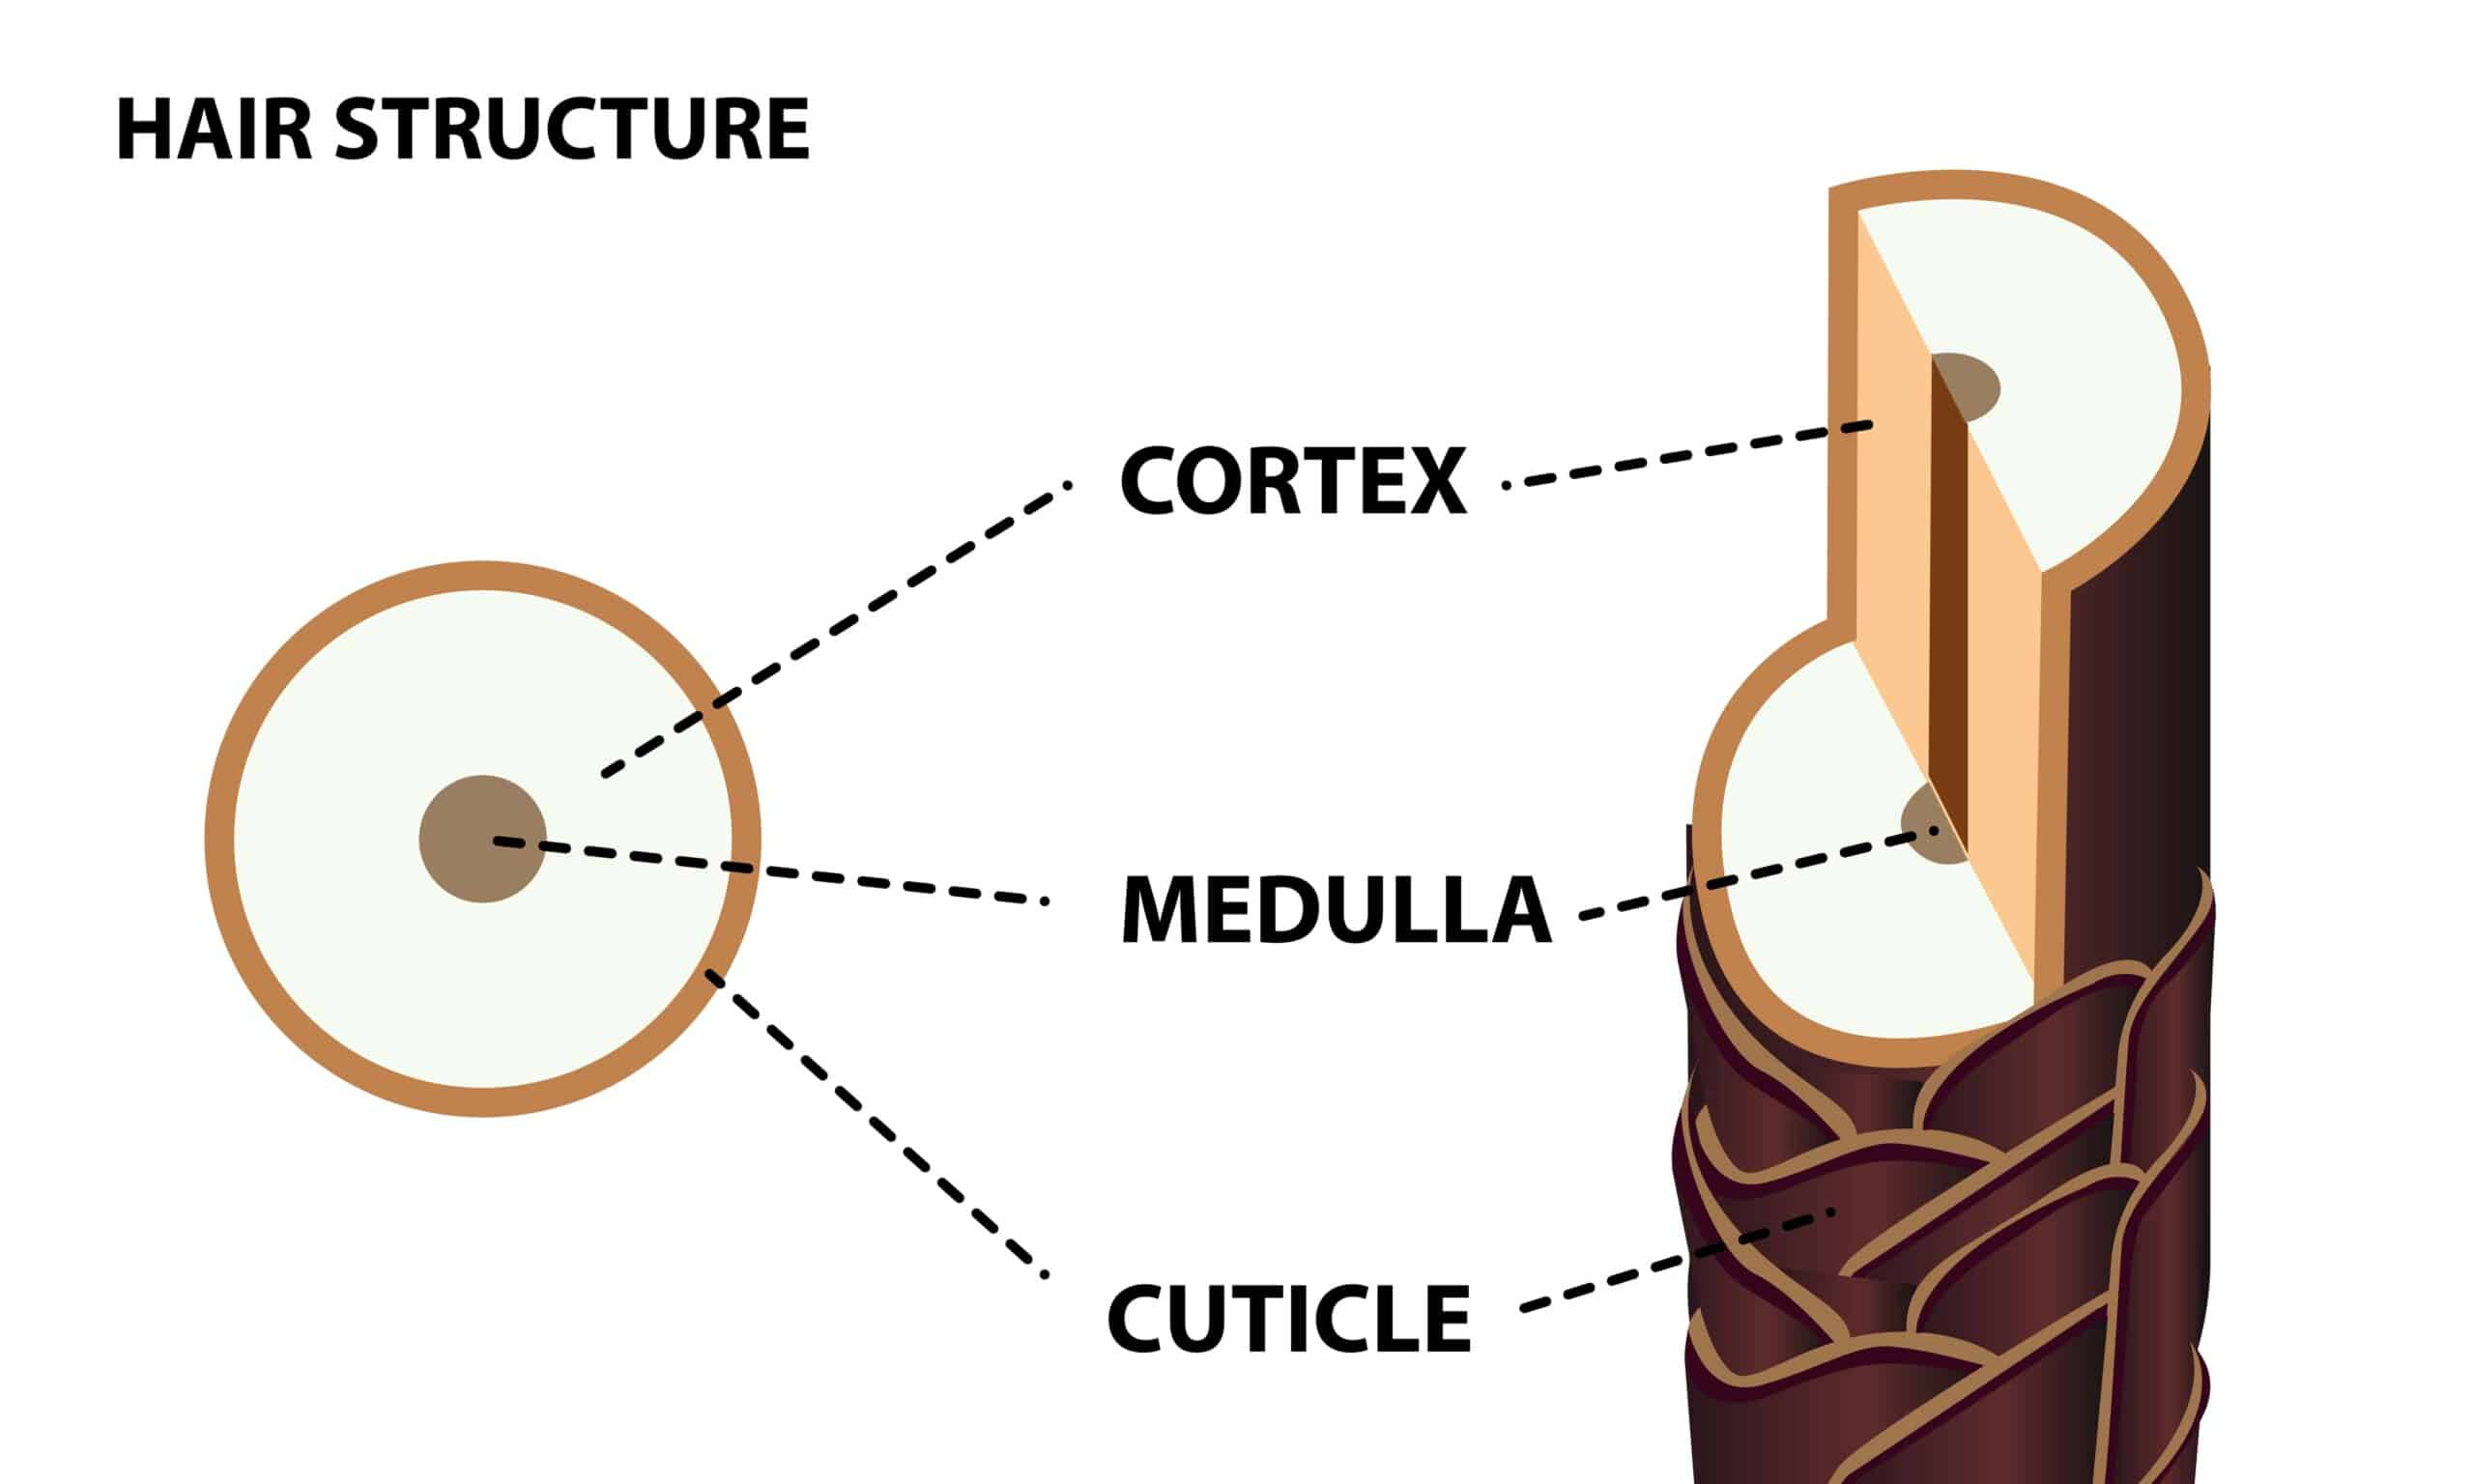 cross-section of hair shaft